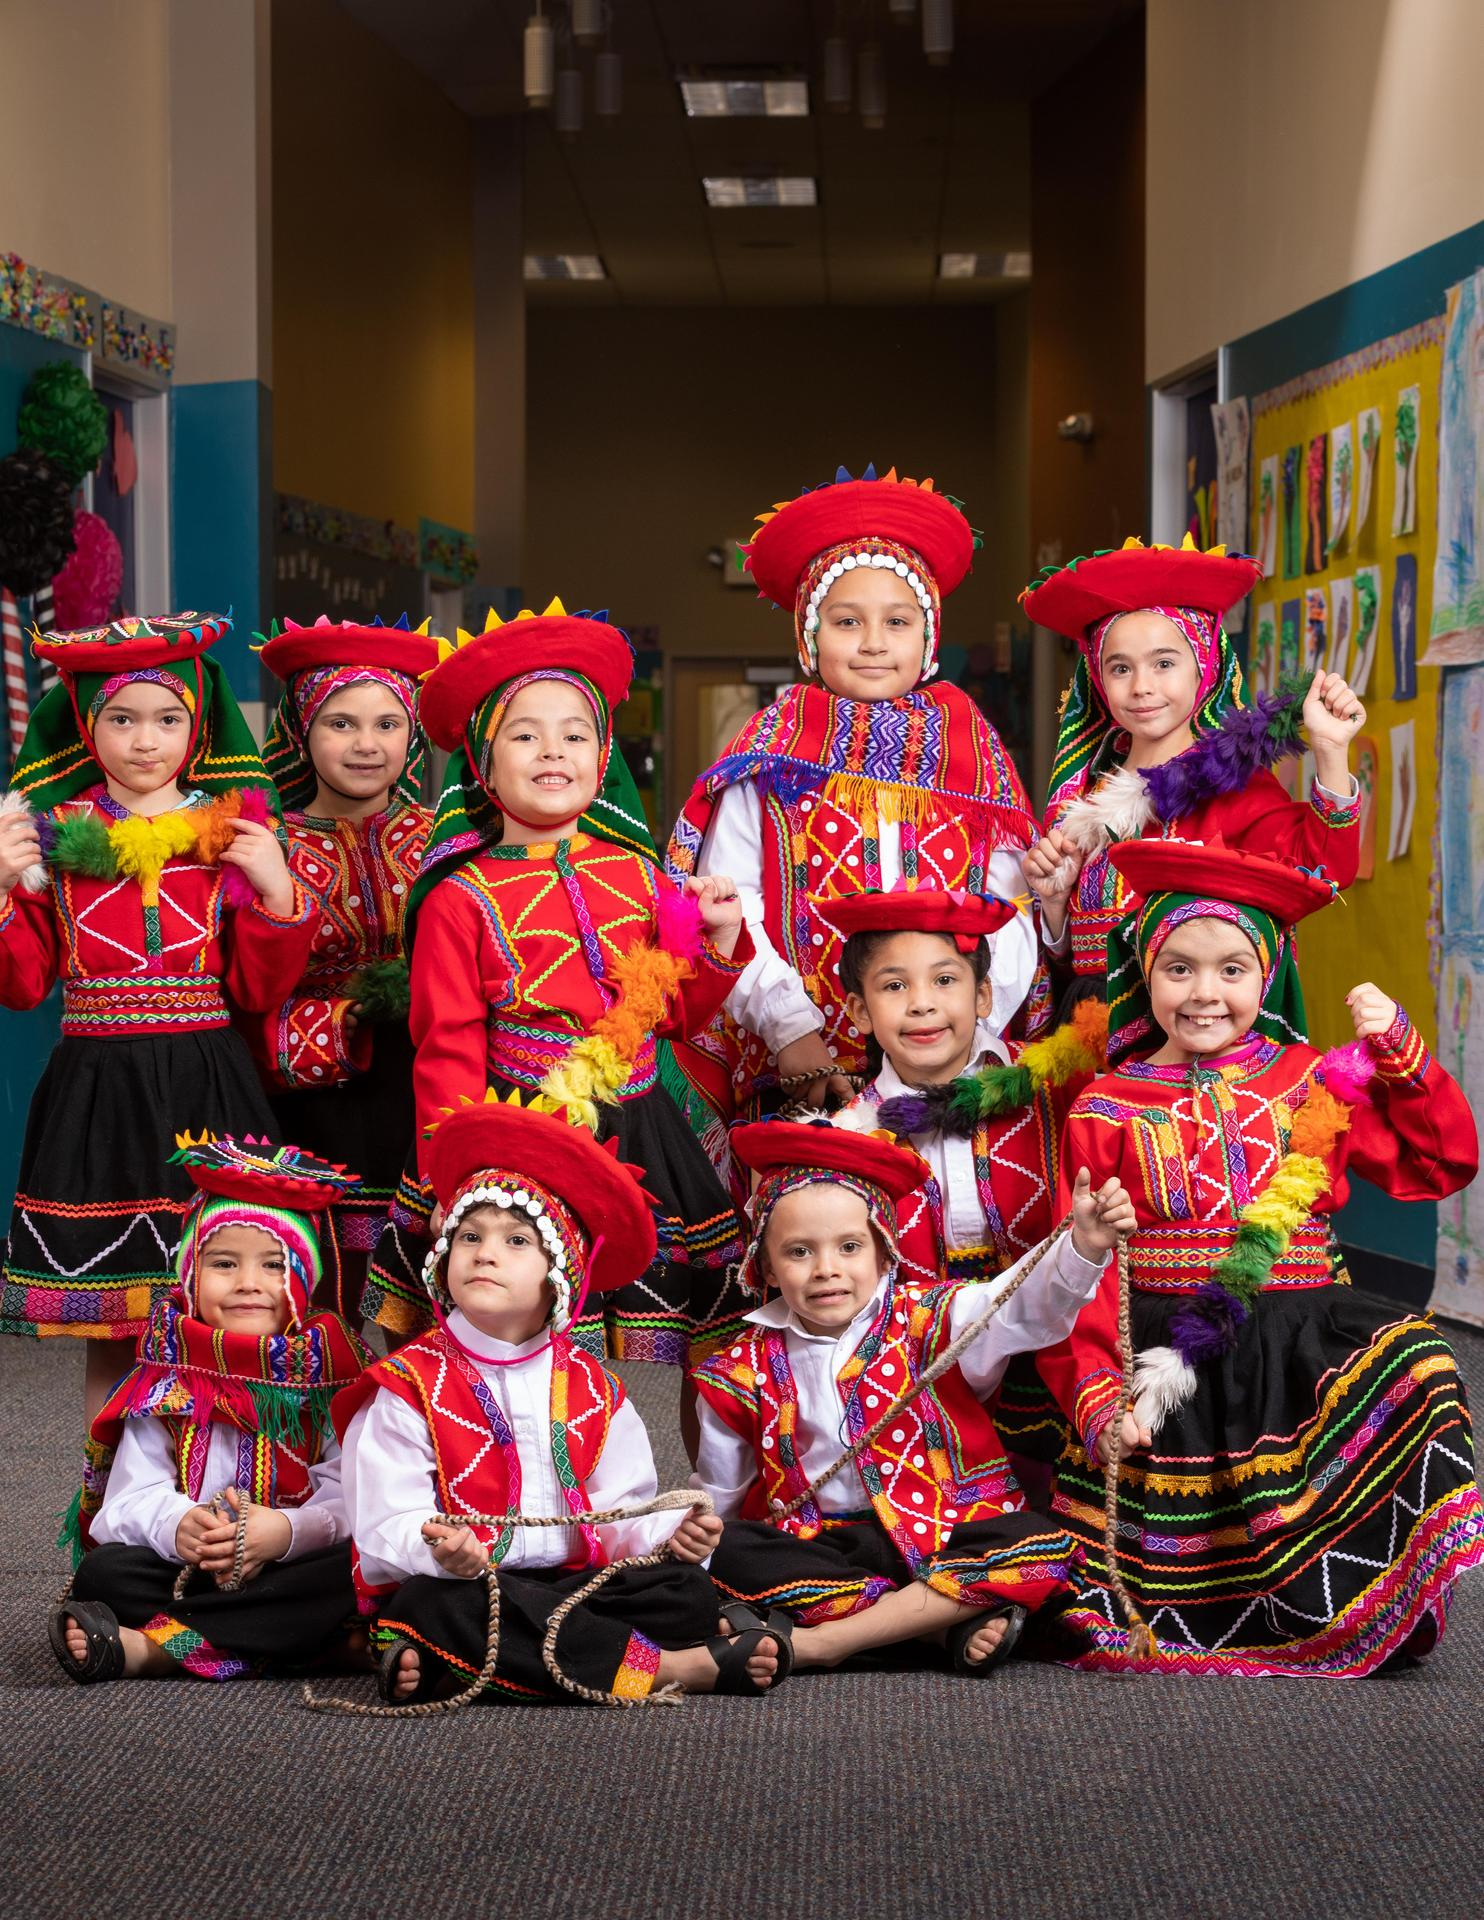 kids in traditional peruvian outfits